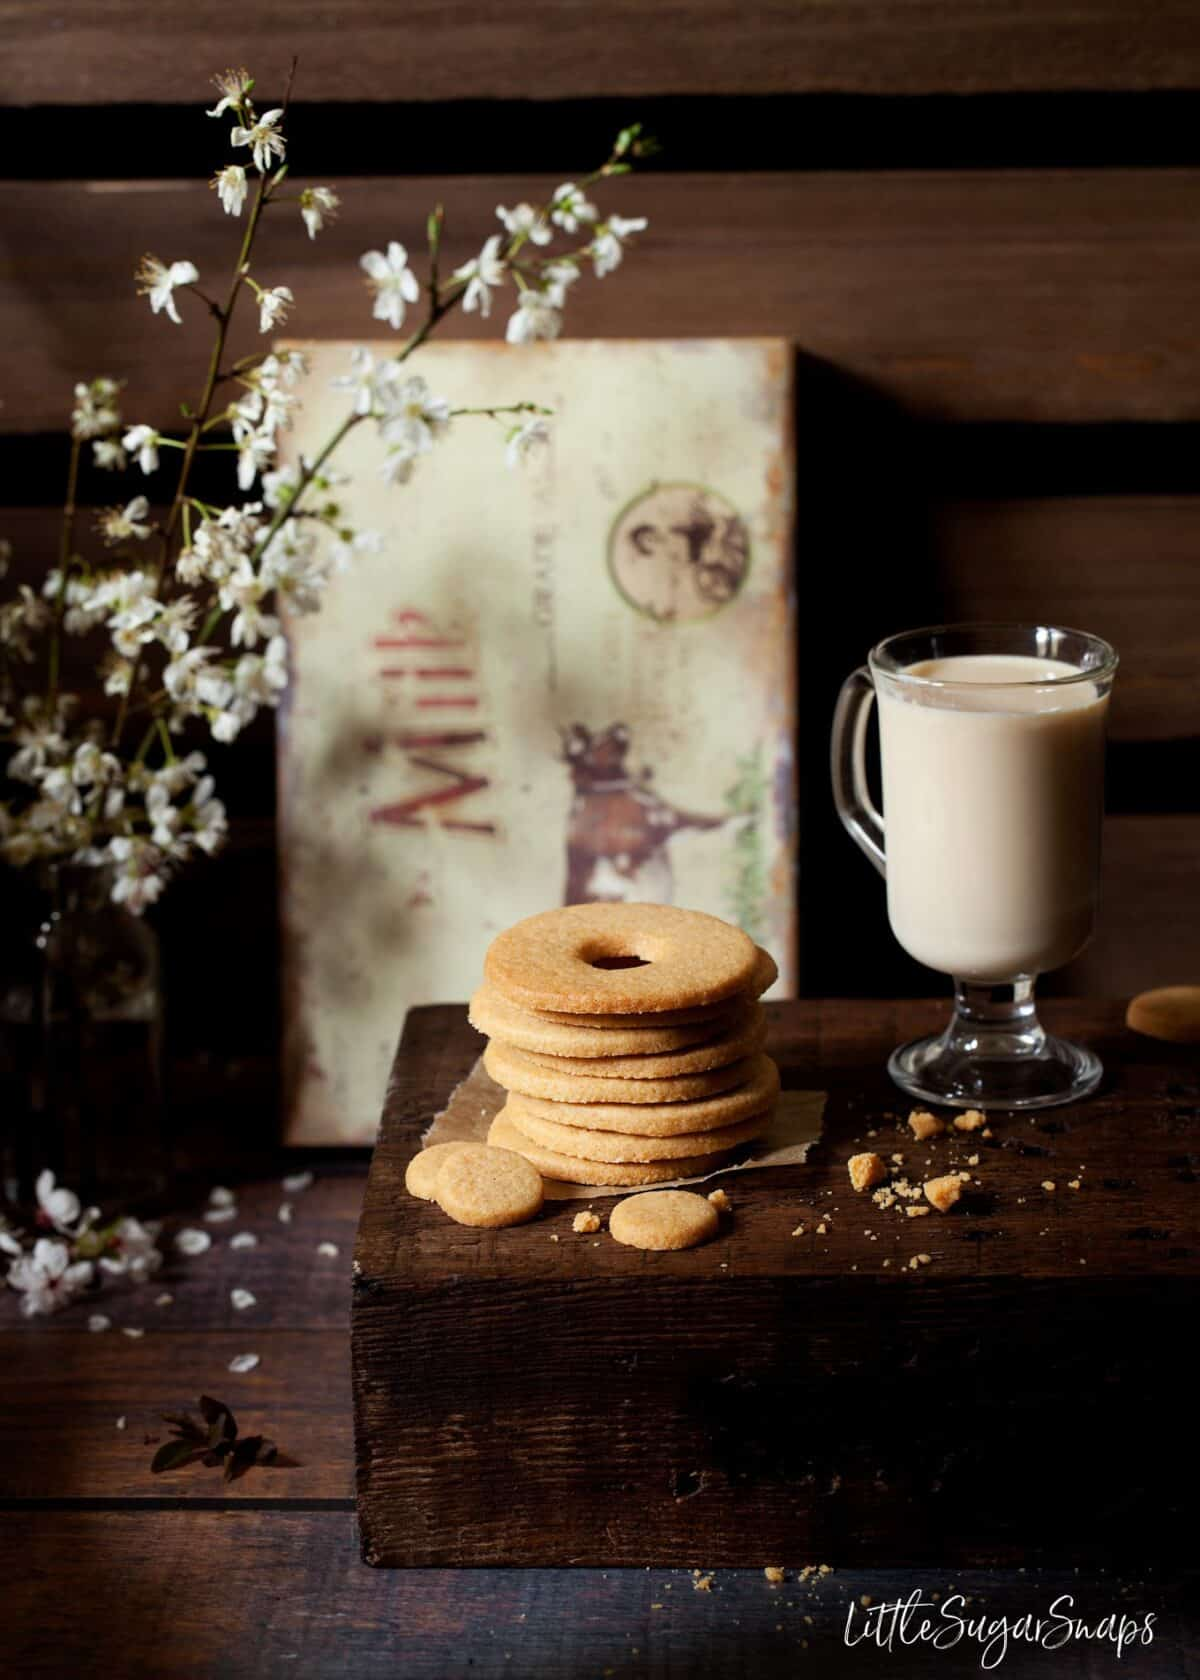 A stack of Malted Milk Biscuits on a wooden board.